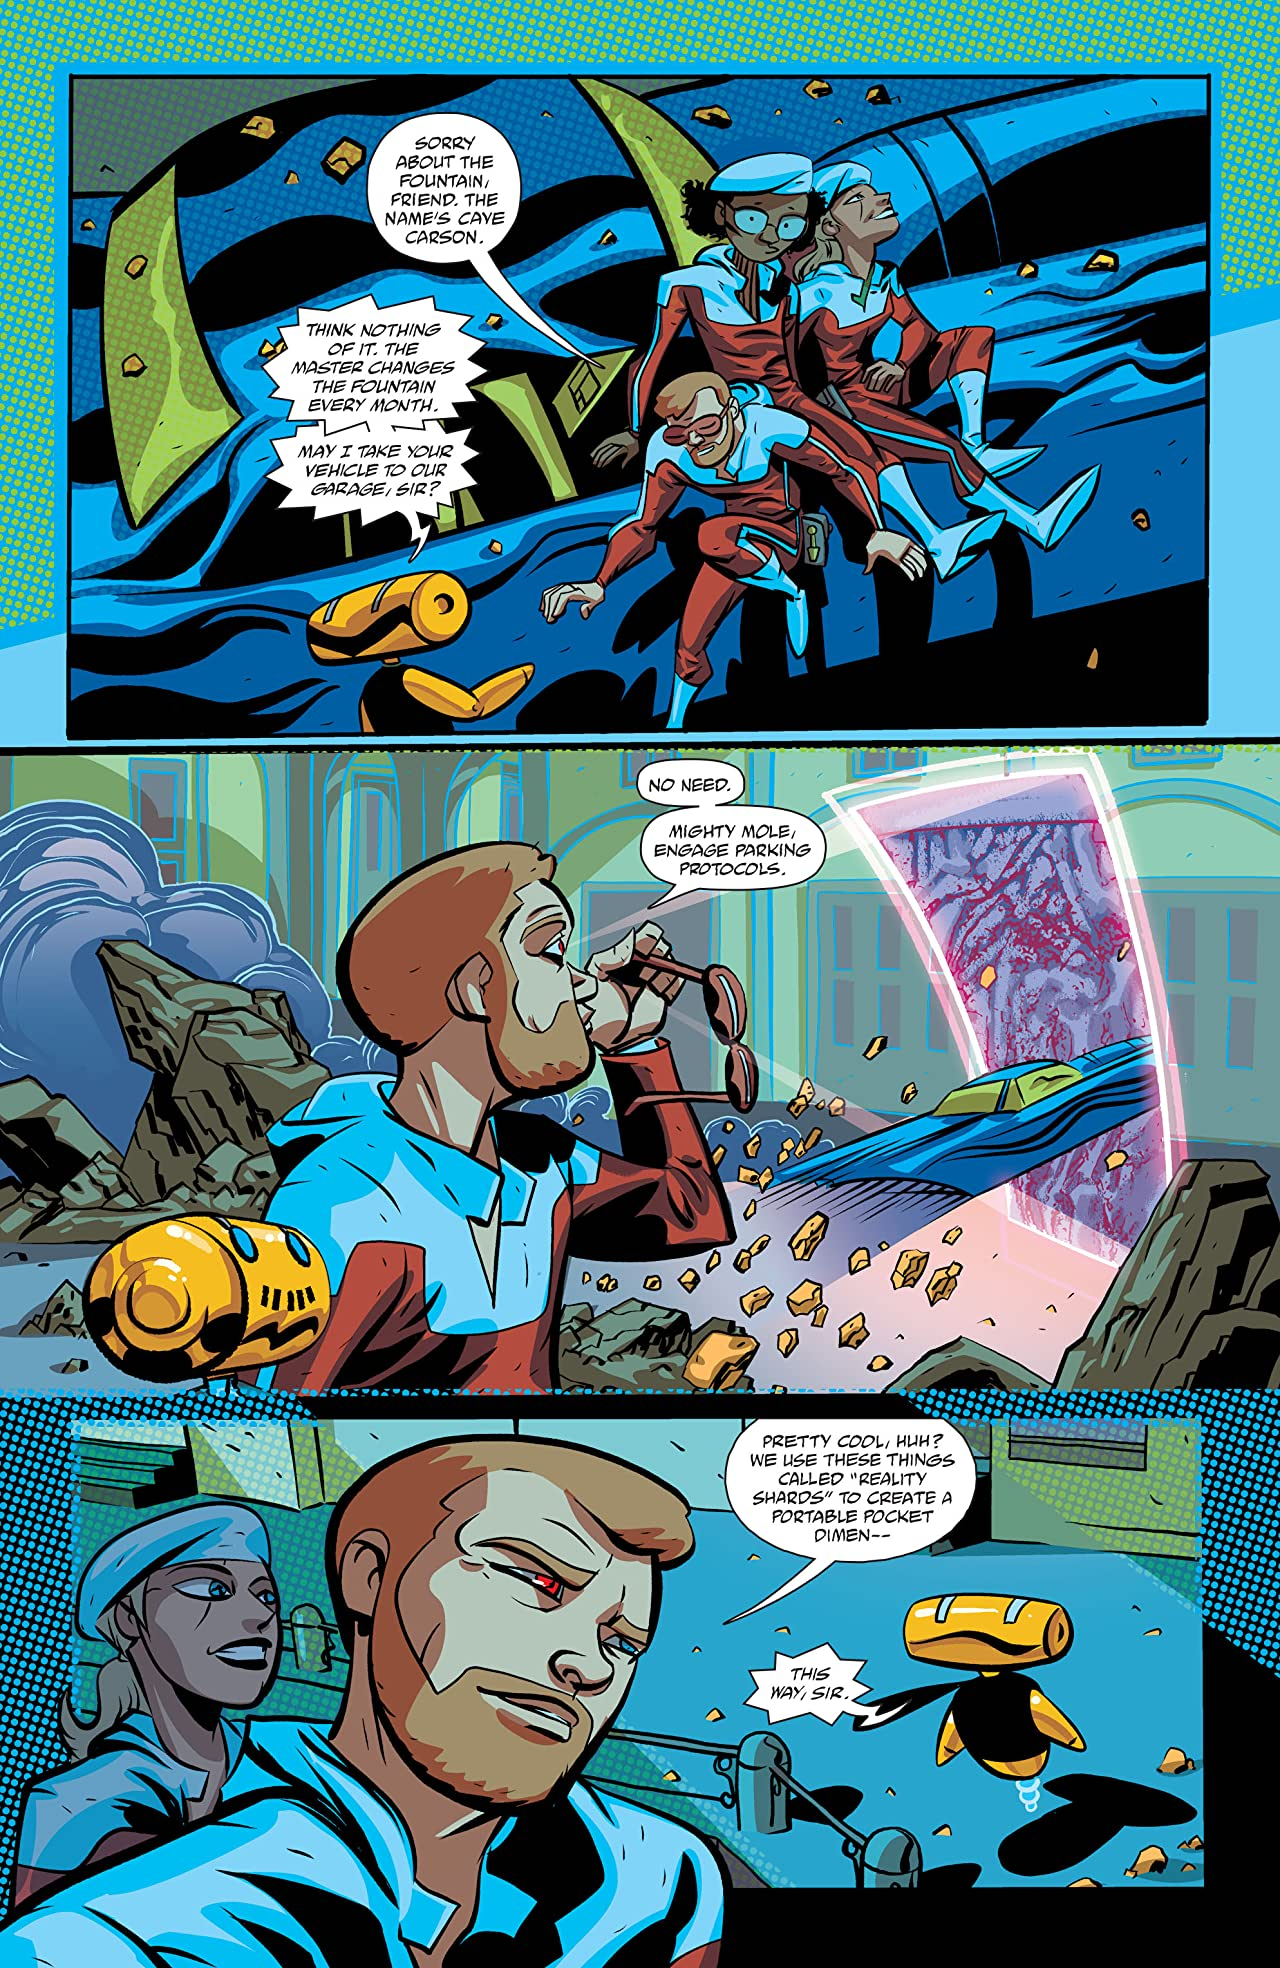 Cave Carson Has an Interstellar Eye (2018)